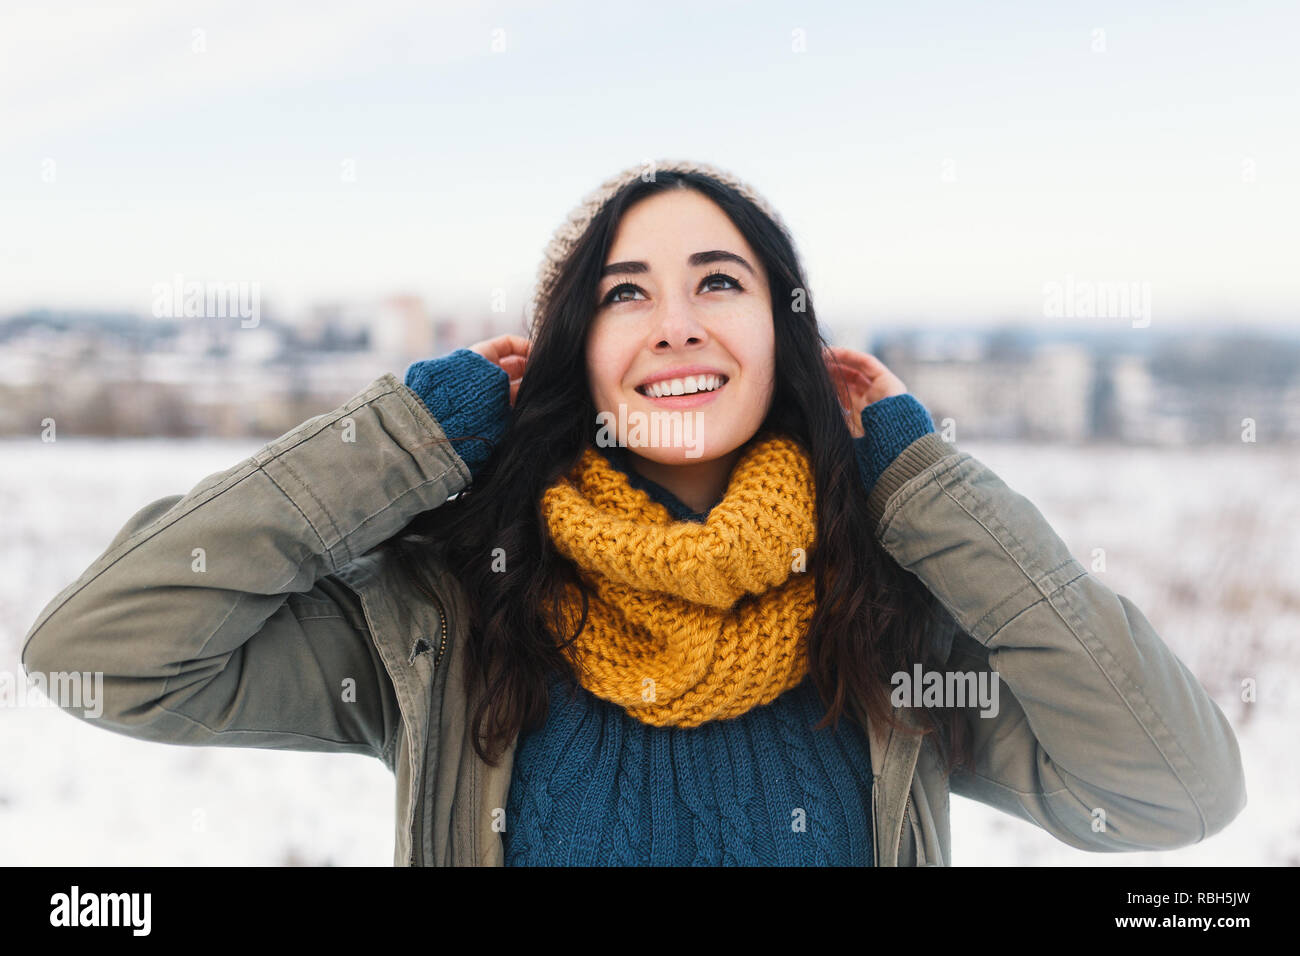 Heart melting winter portrait of pretty young woman enjoying winter, vacation, snow, holiday and her comfy, beautiful clothes and a warm woollen sweat - Stock Image